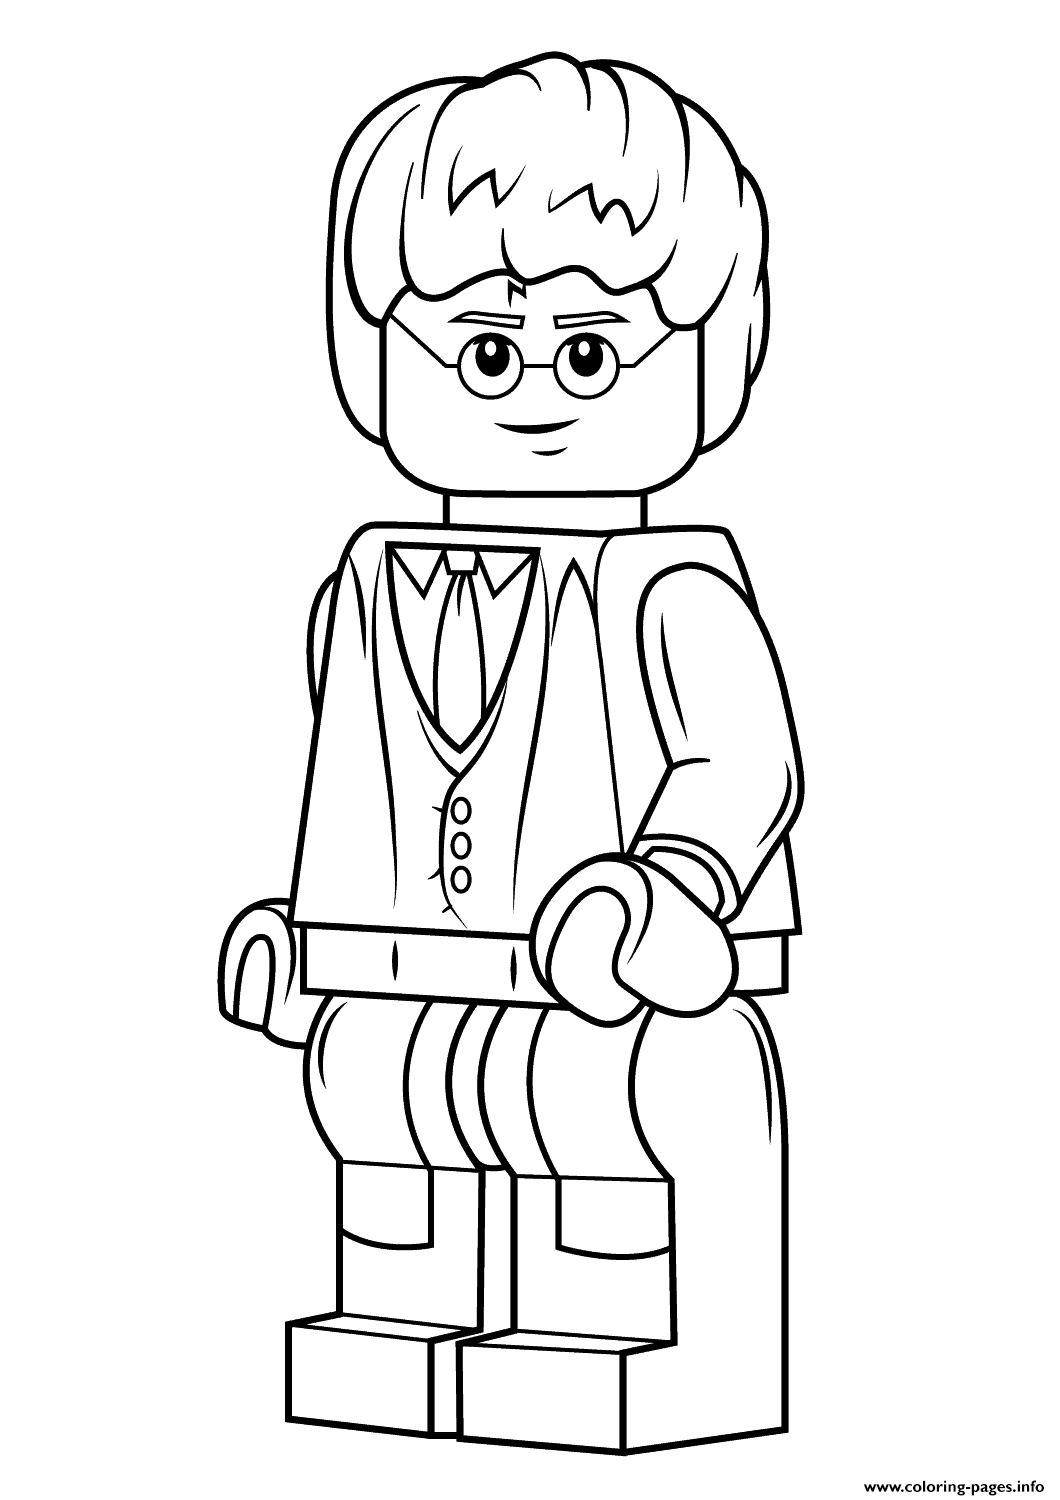 harry potter lego coloring pages harry potter contest from lego ideas true north bricks potter coloring lego harry pages